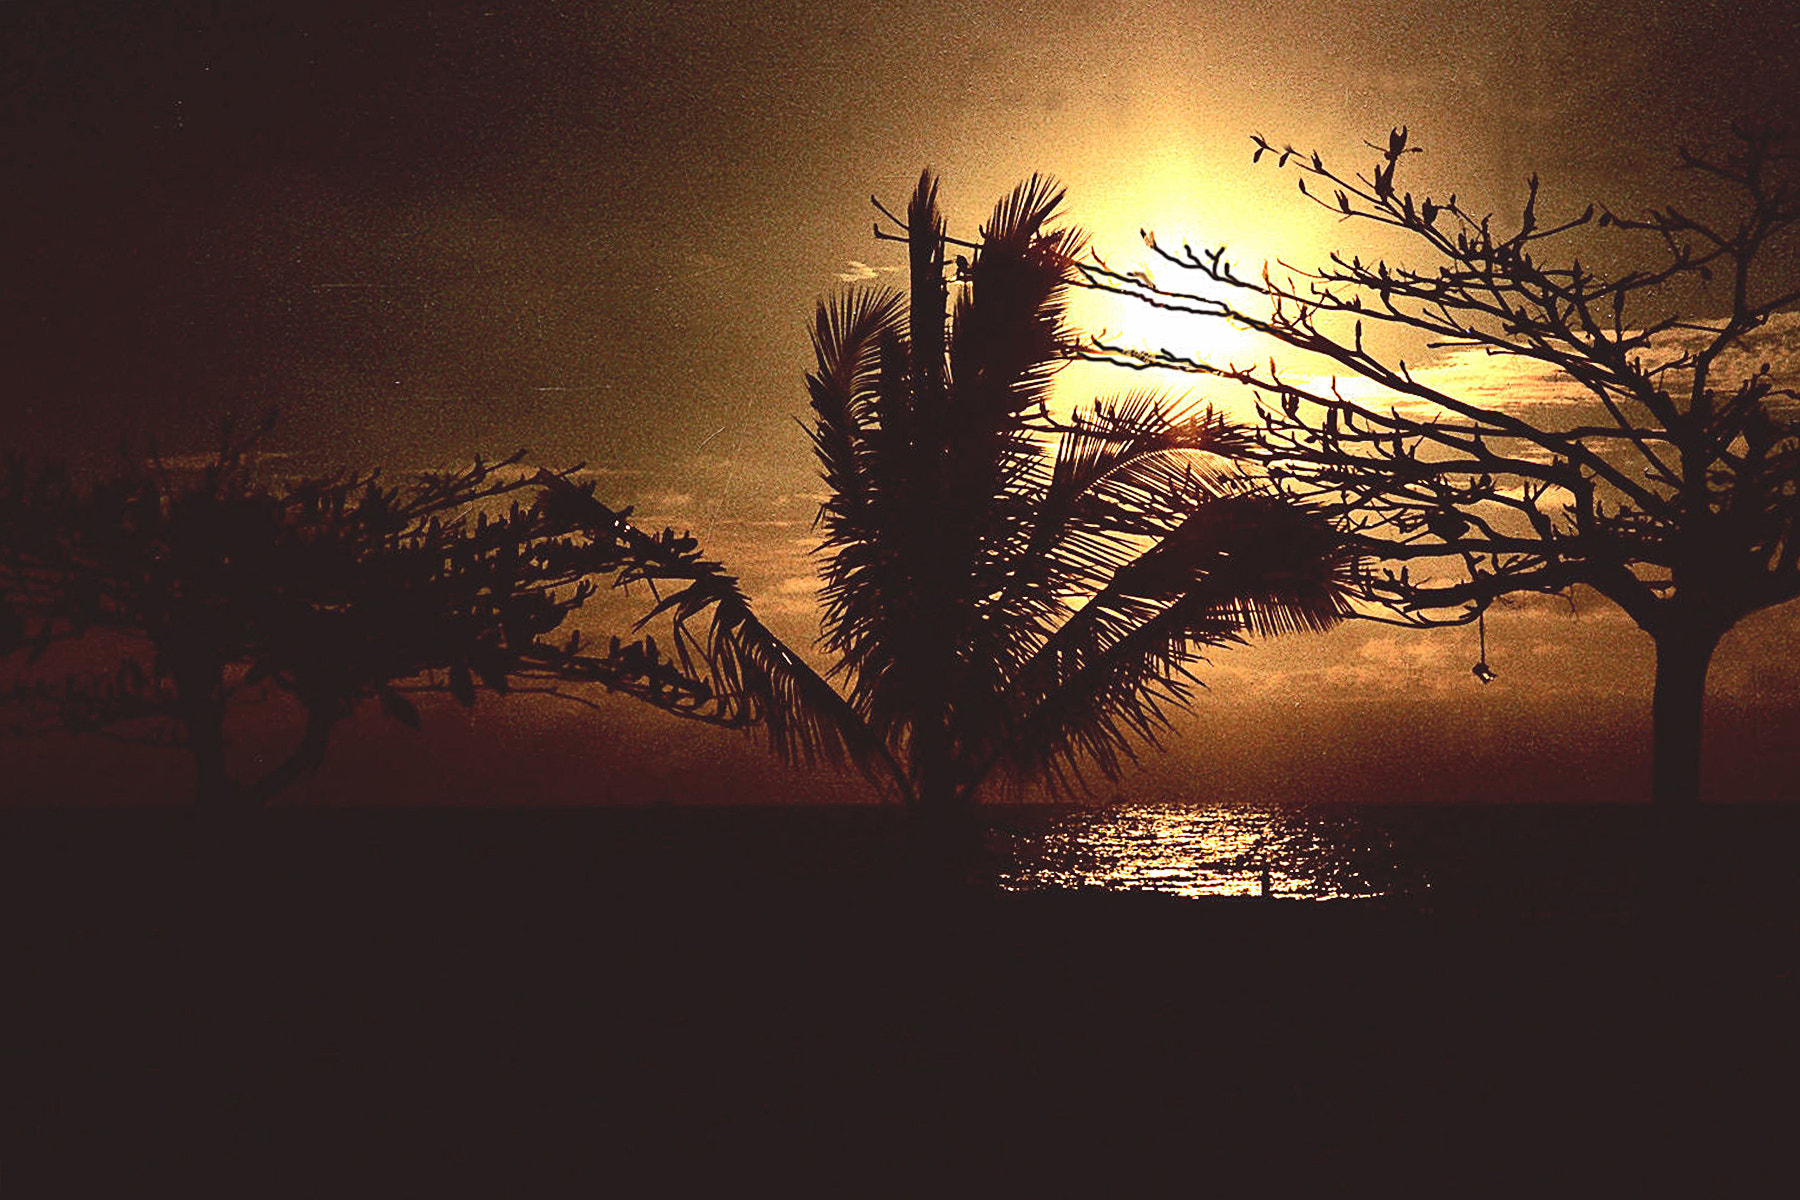 Photograph Atardecer Tropical - Tropical Sunset by Wilo Enríquez on 500px